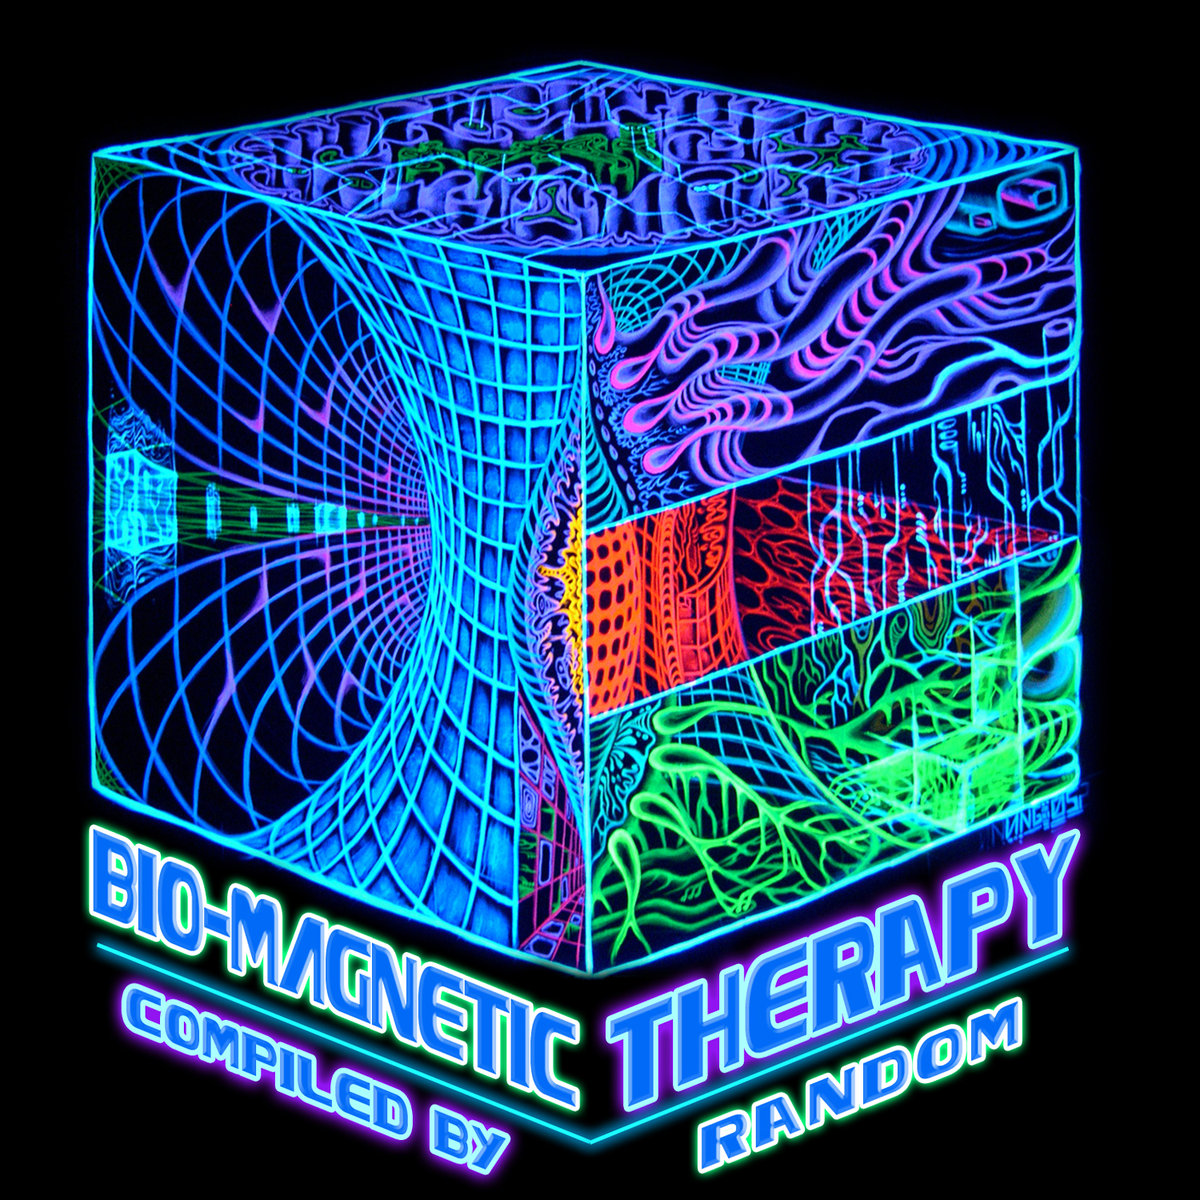 Hyperboreans - Cross Pollination @ 'Various Artists - Bio-Magnetic Therapy (Compiled by Random)' album (electronic, goa)